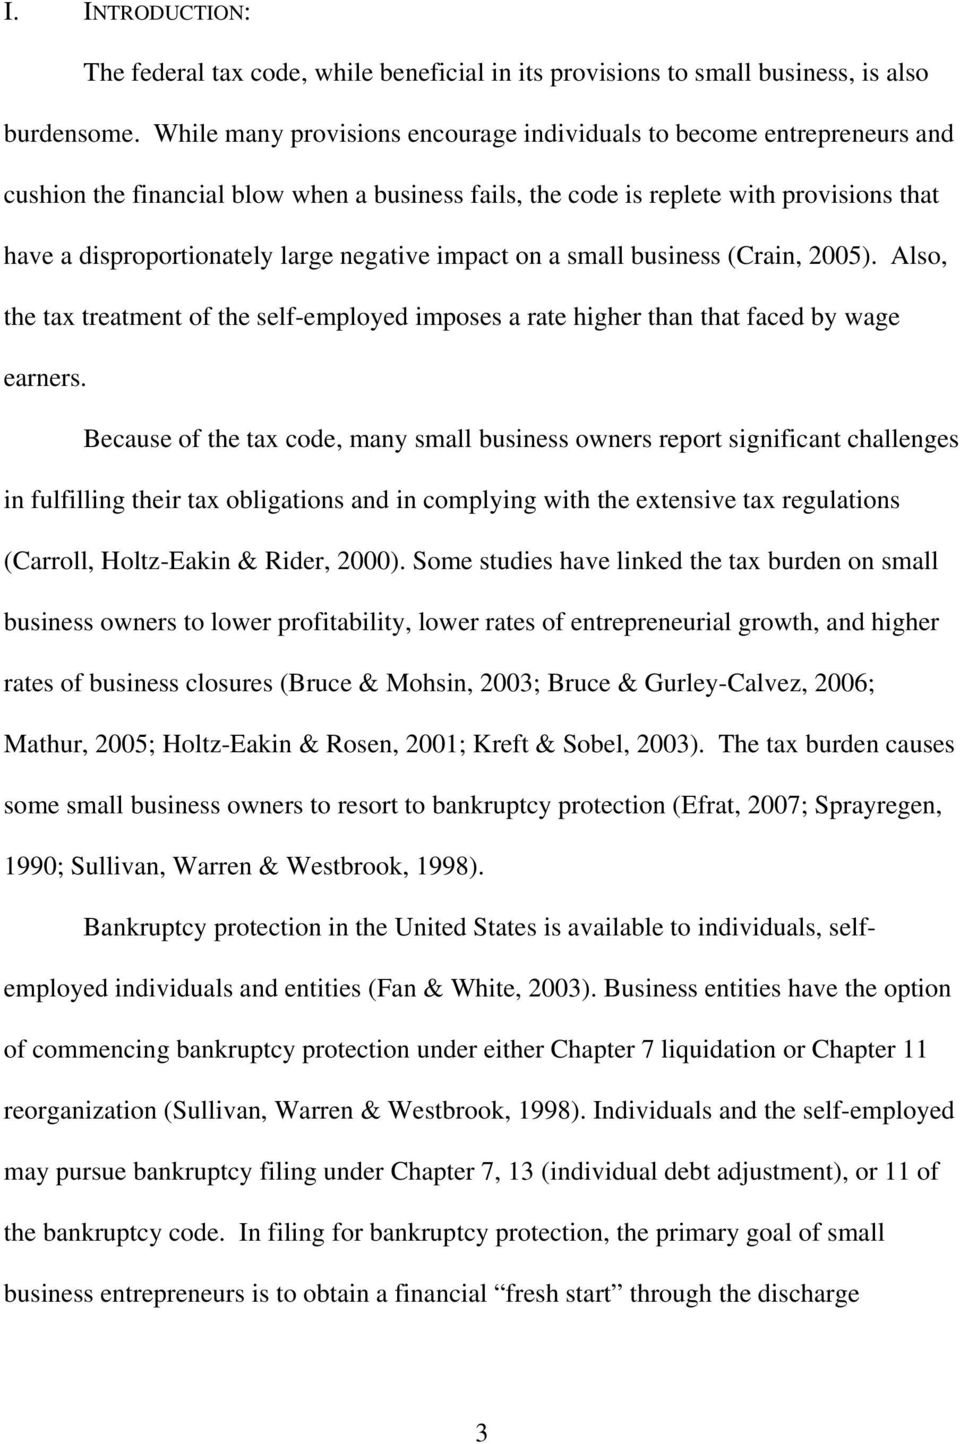 negative impact on a small business (Crain, 2005). Also, the tax treatment of the self-employed imposes a rate higher than that faced by wage earners.